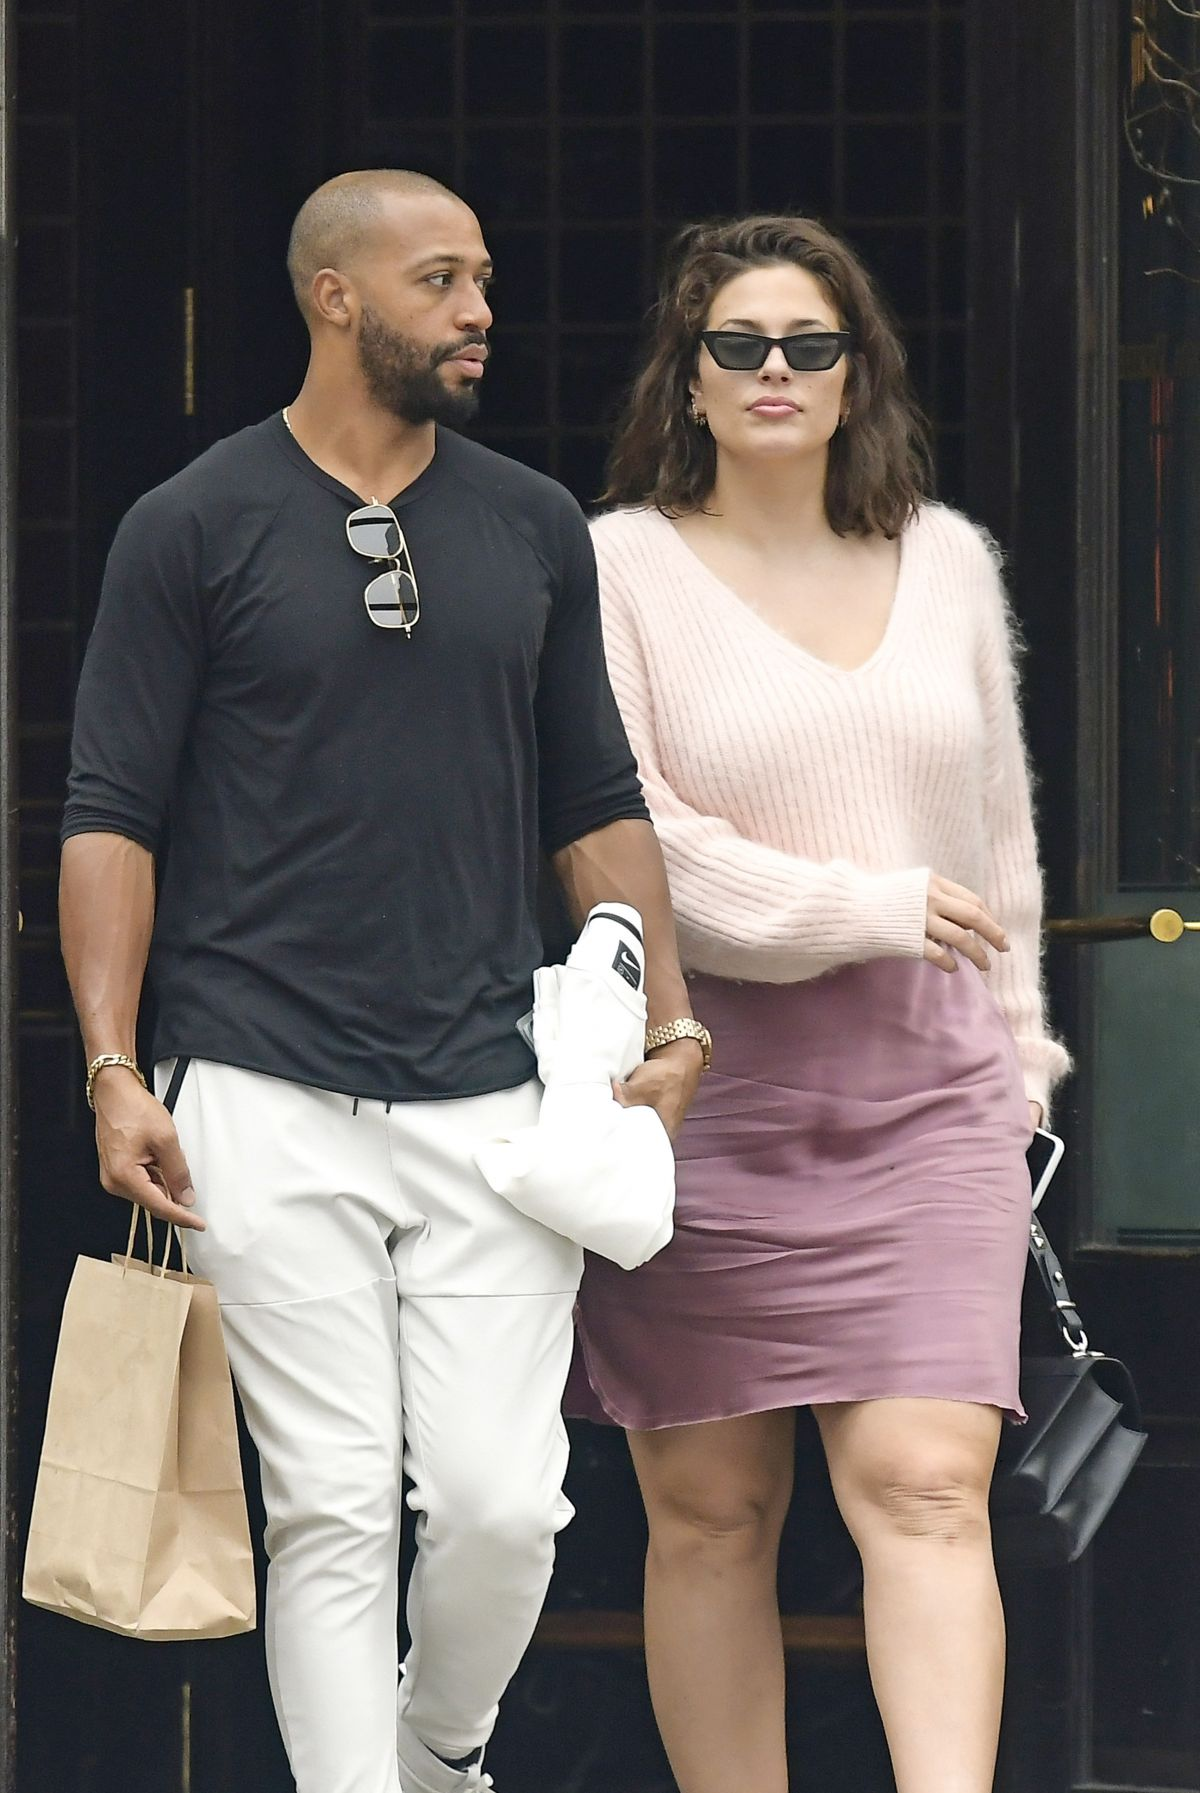 Ashley Graham And Justin Ervin Out In New York 04 14 2019 Hawtcelebs